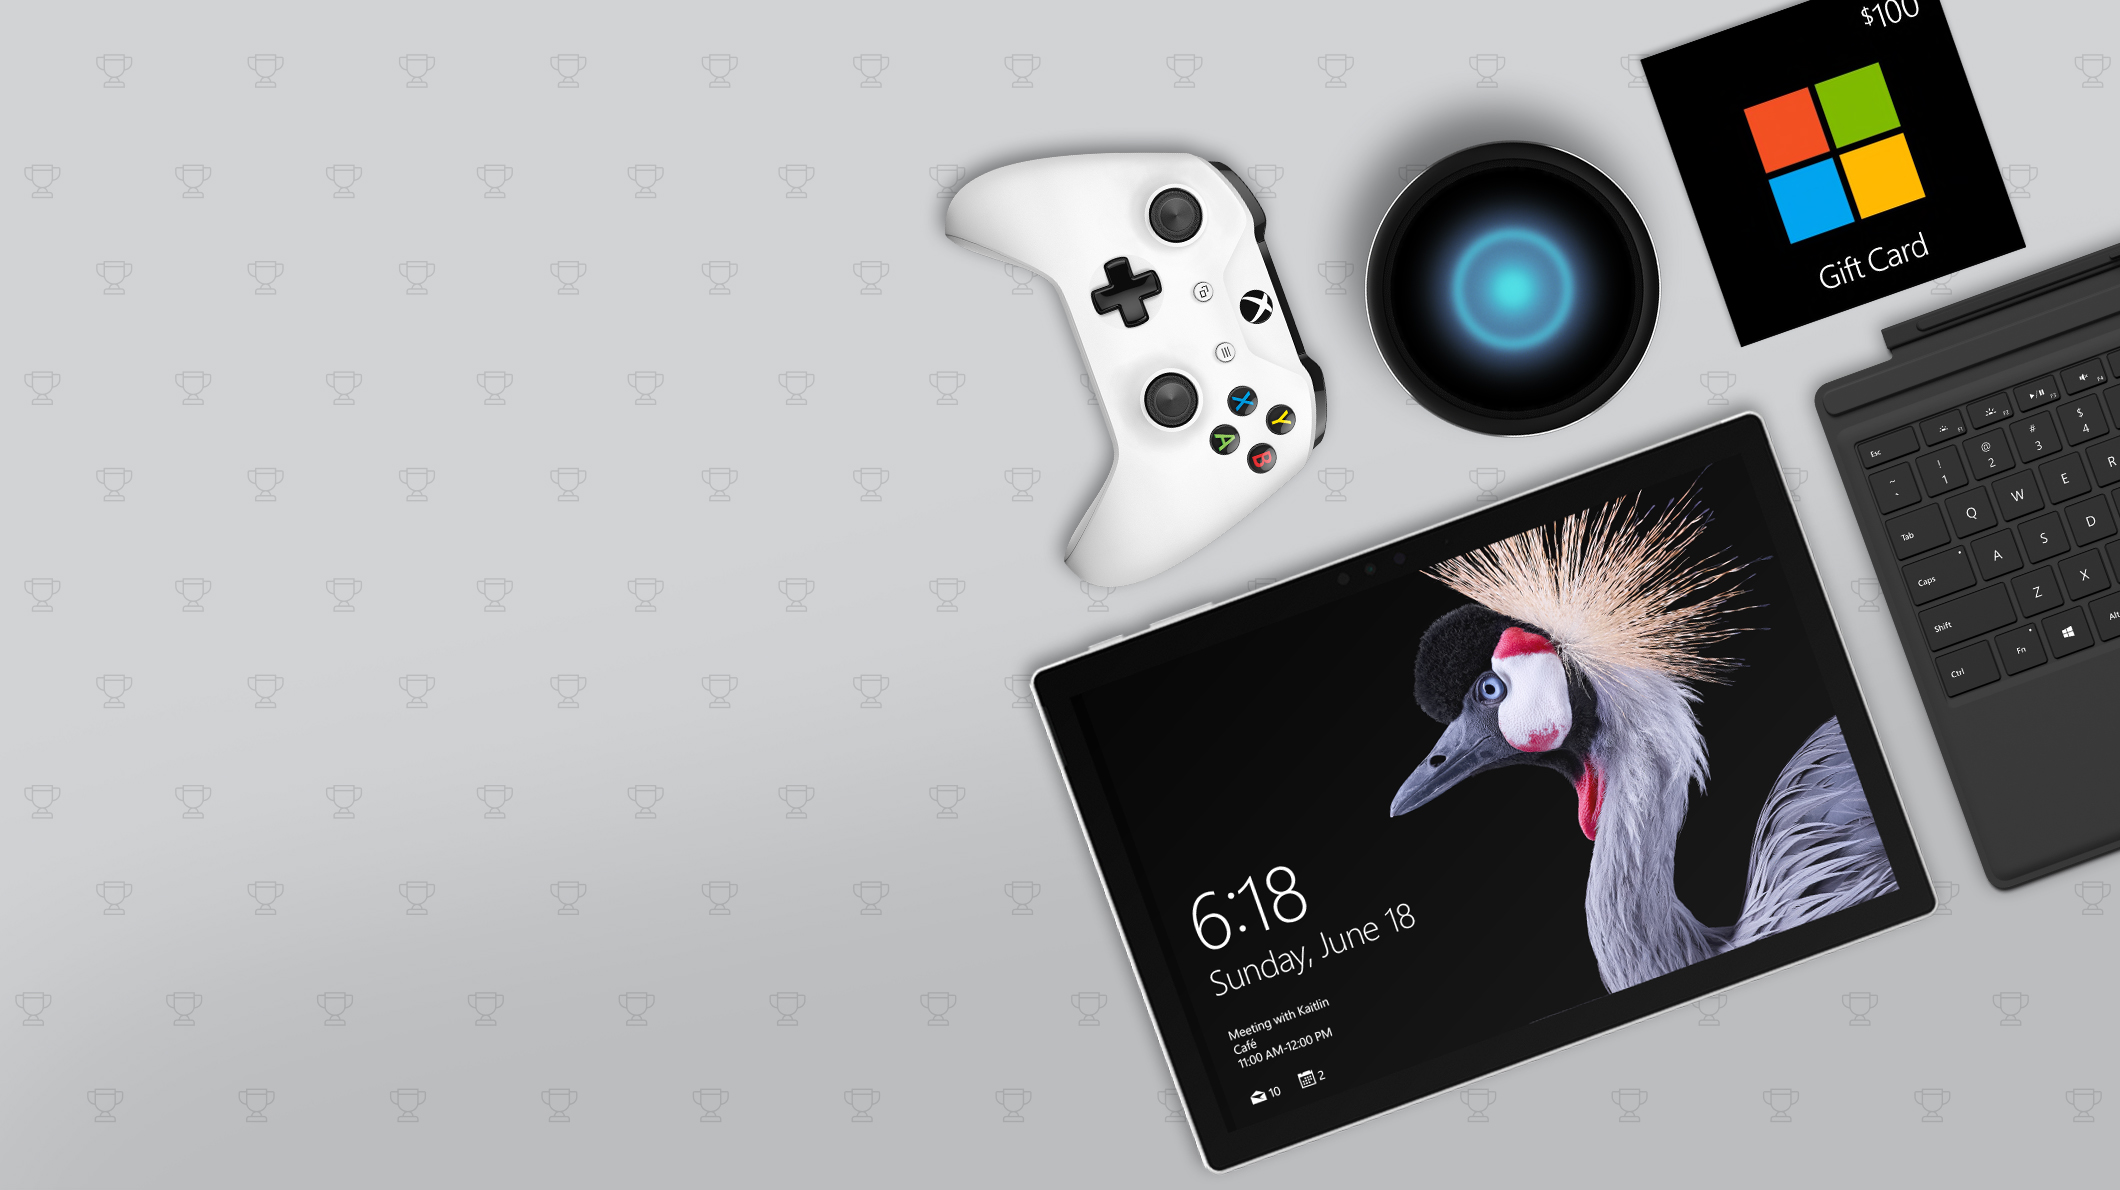 A Surface device, keyboard, Xbox controller, speaker, and Microsoft gift card